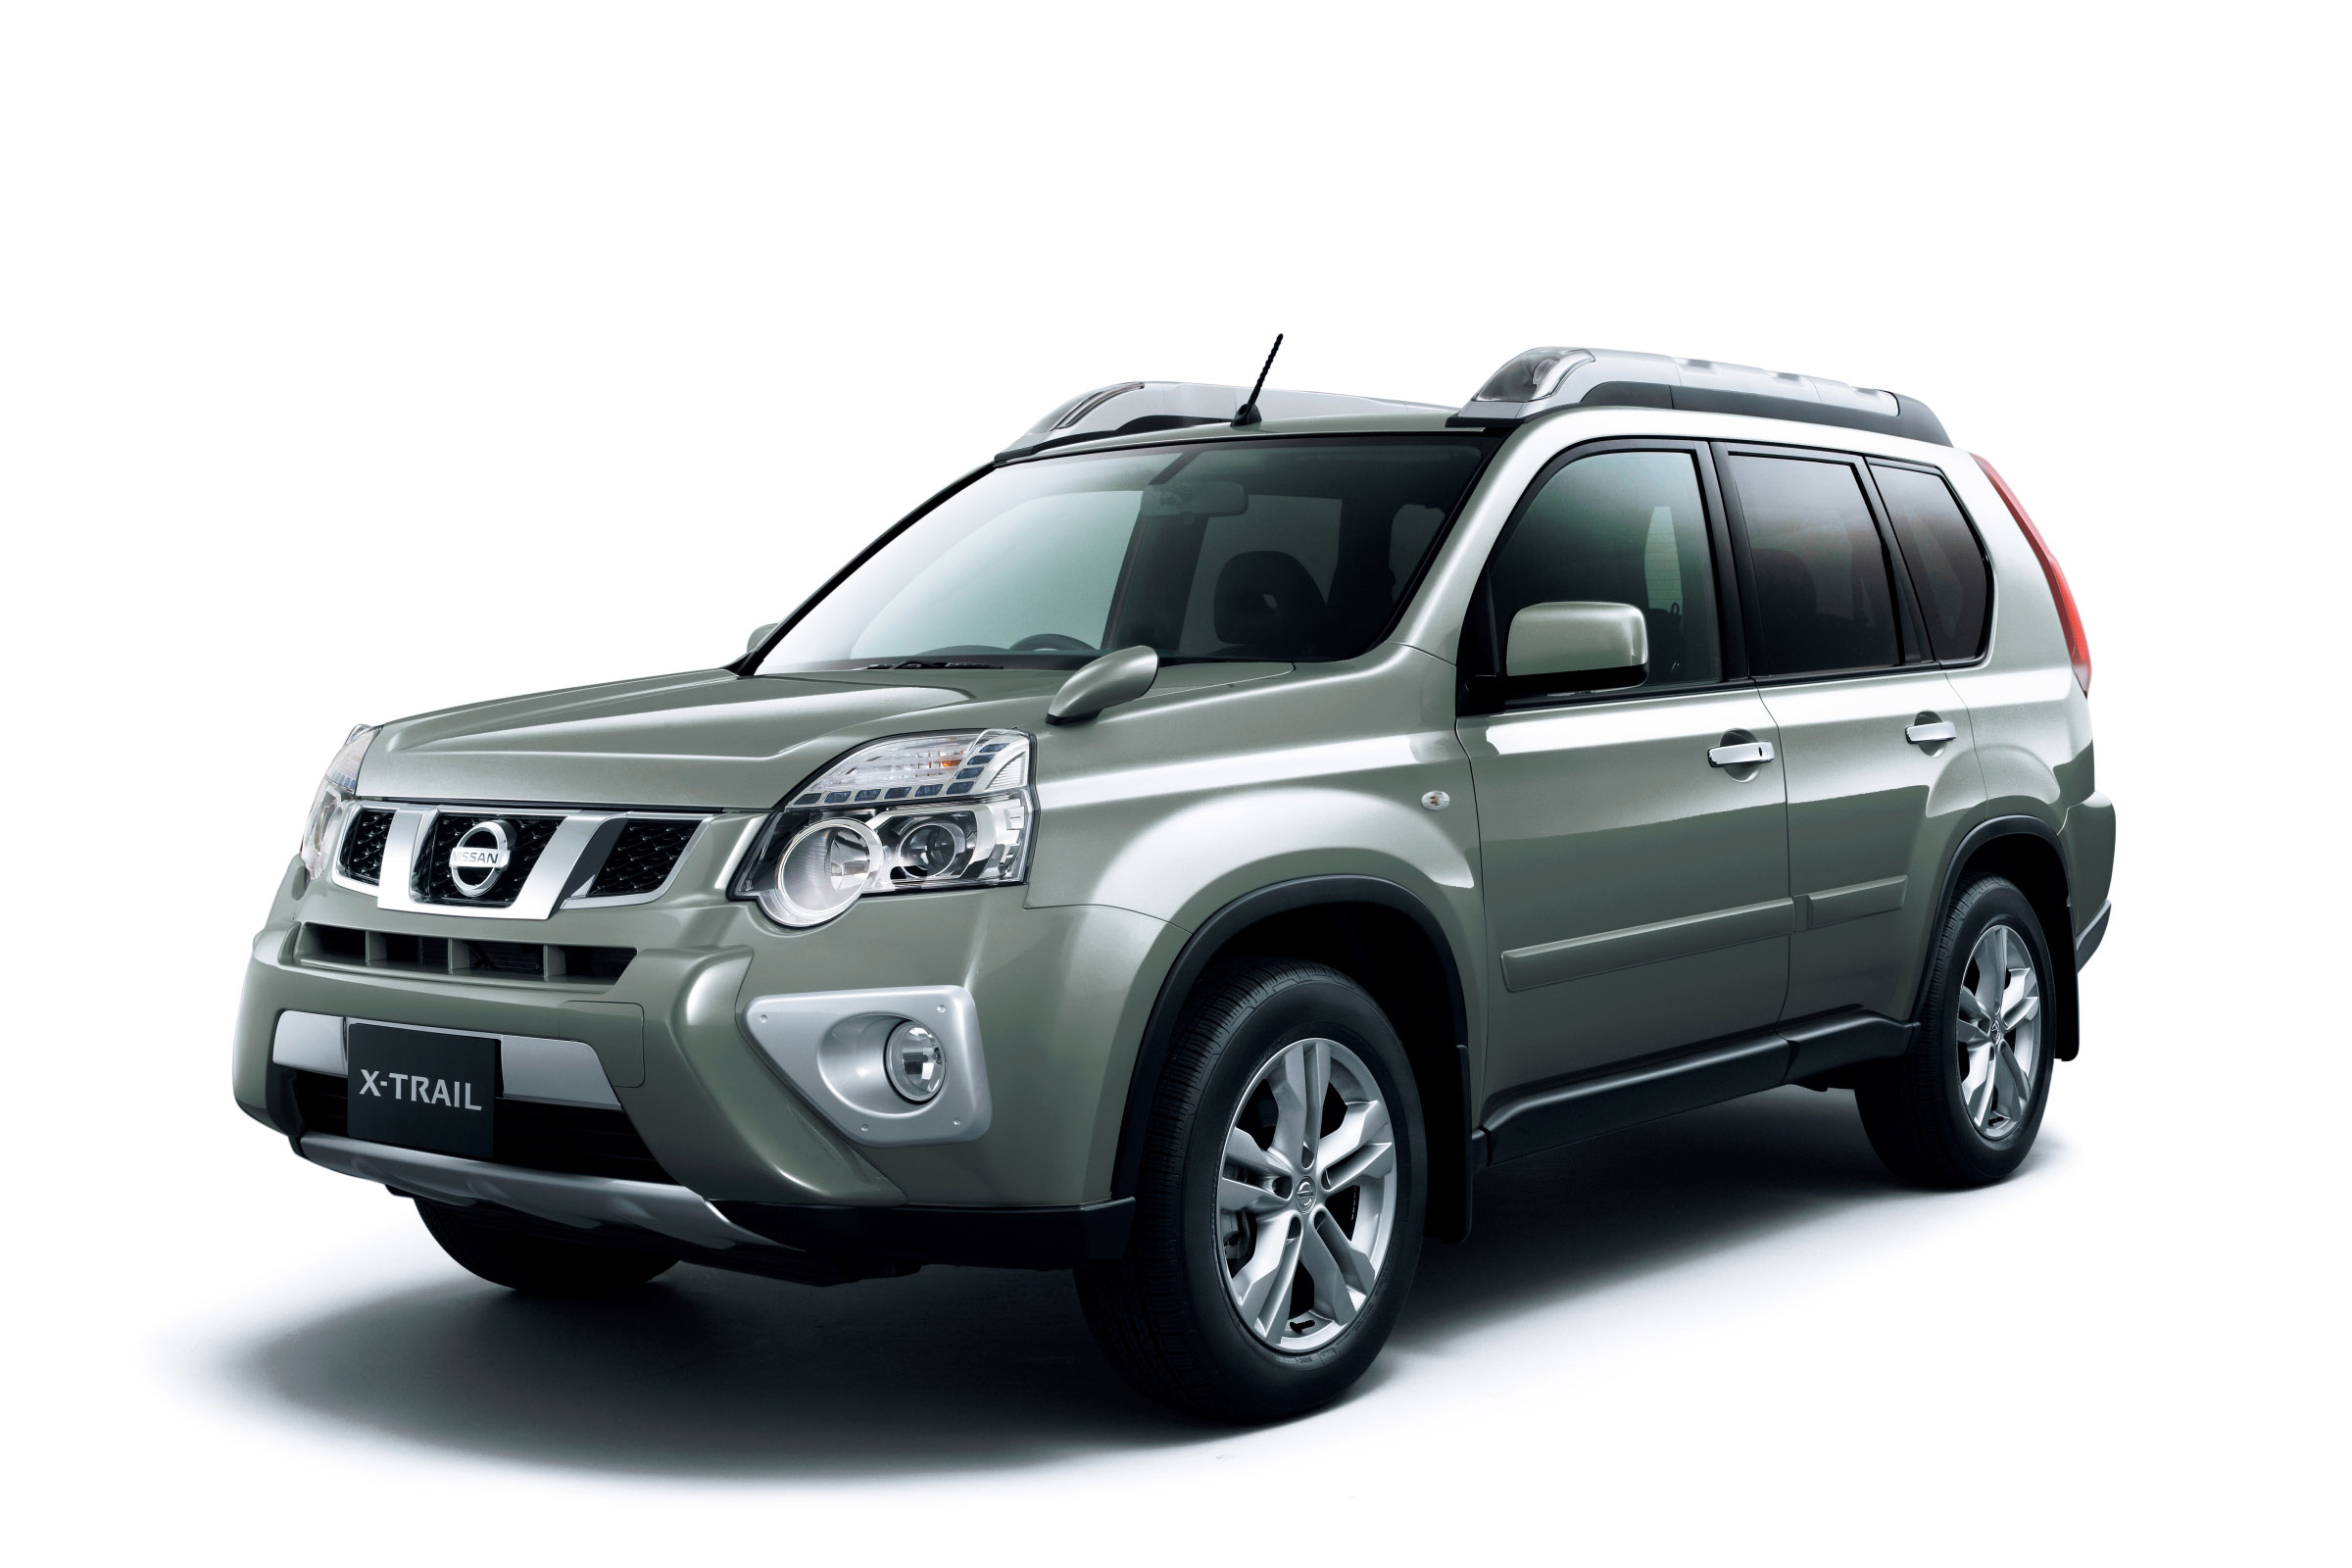 2010 nissan x trail x tremer x picture 40059. Black Bedroom Furniture Sets. Home Design Ideas